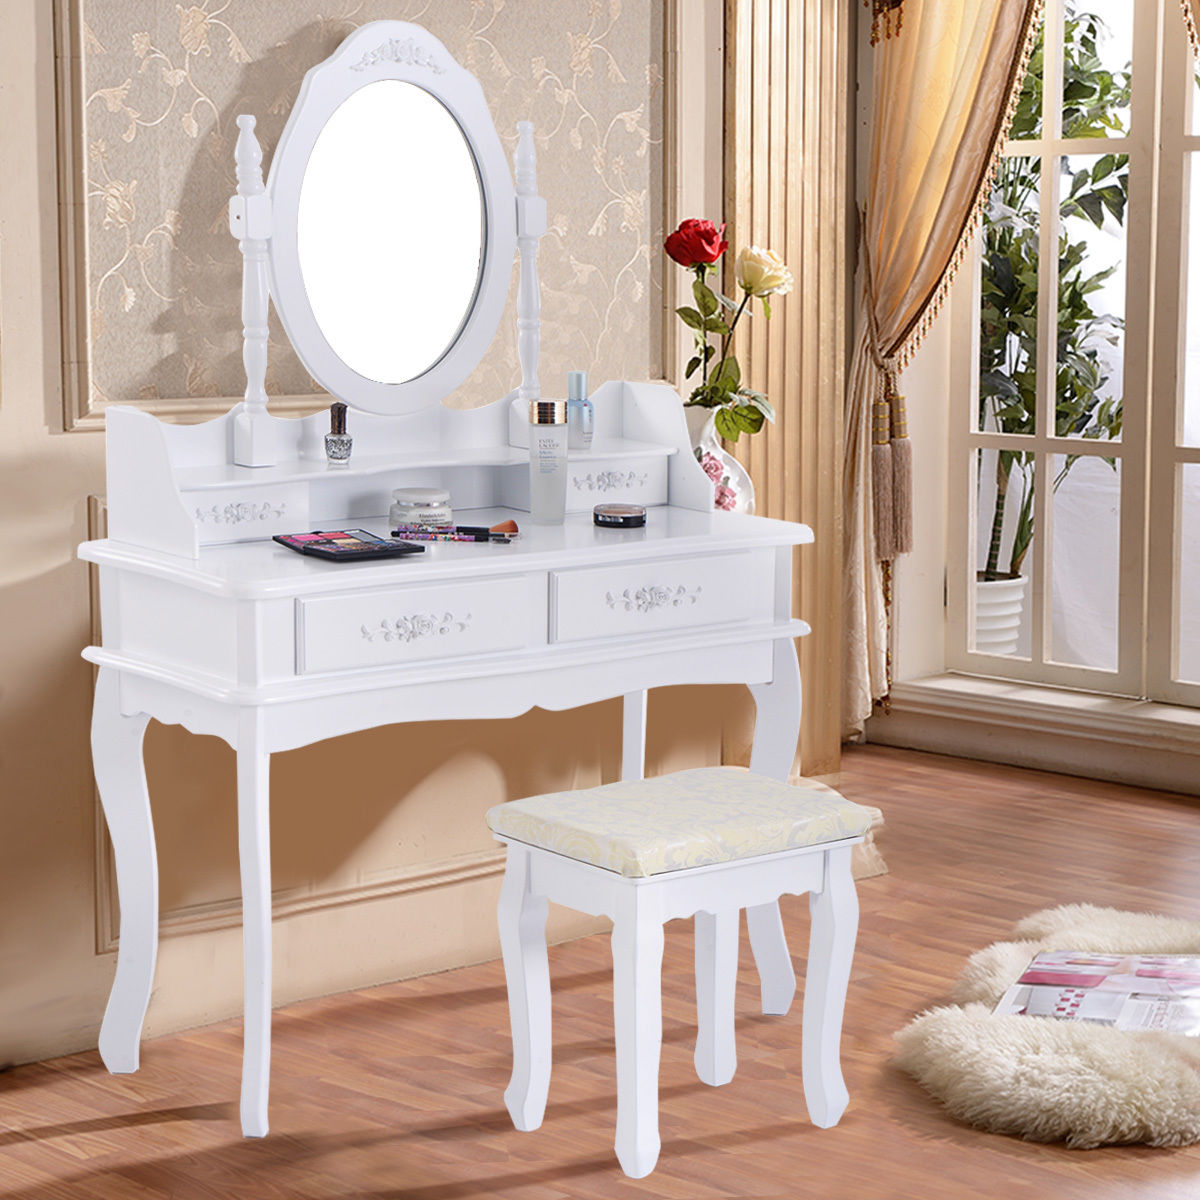 Giantex White Vanity Table Jewelry Makeup Dressing Table Set with Stool and 4 Drawerd Modern Mirror Wood Desk HW52936 декор lord vanity quinta mirabilia grigio 20x56